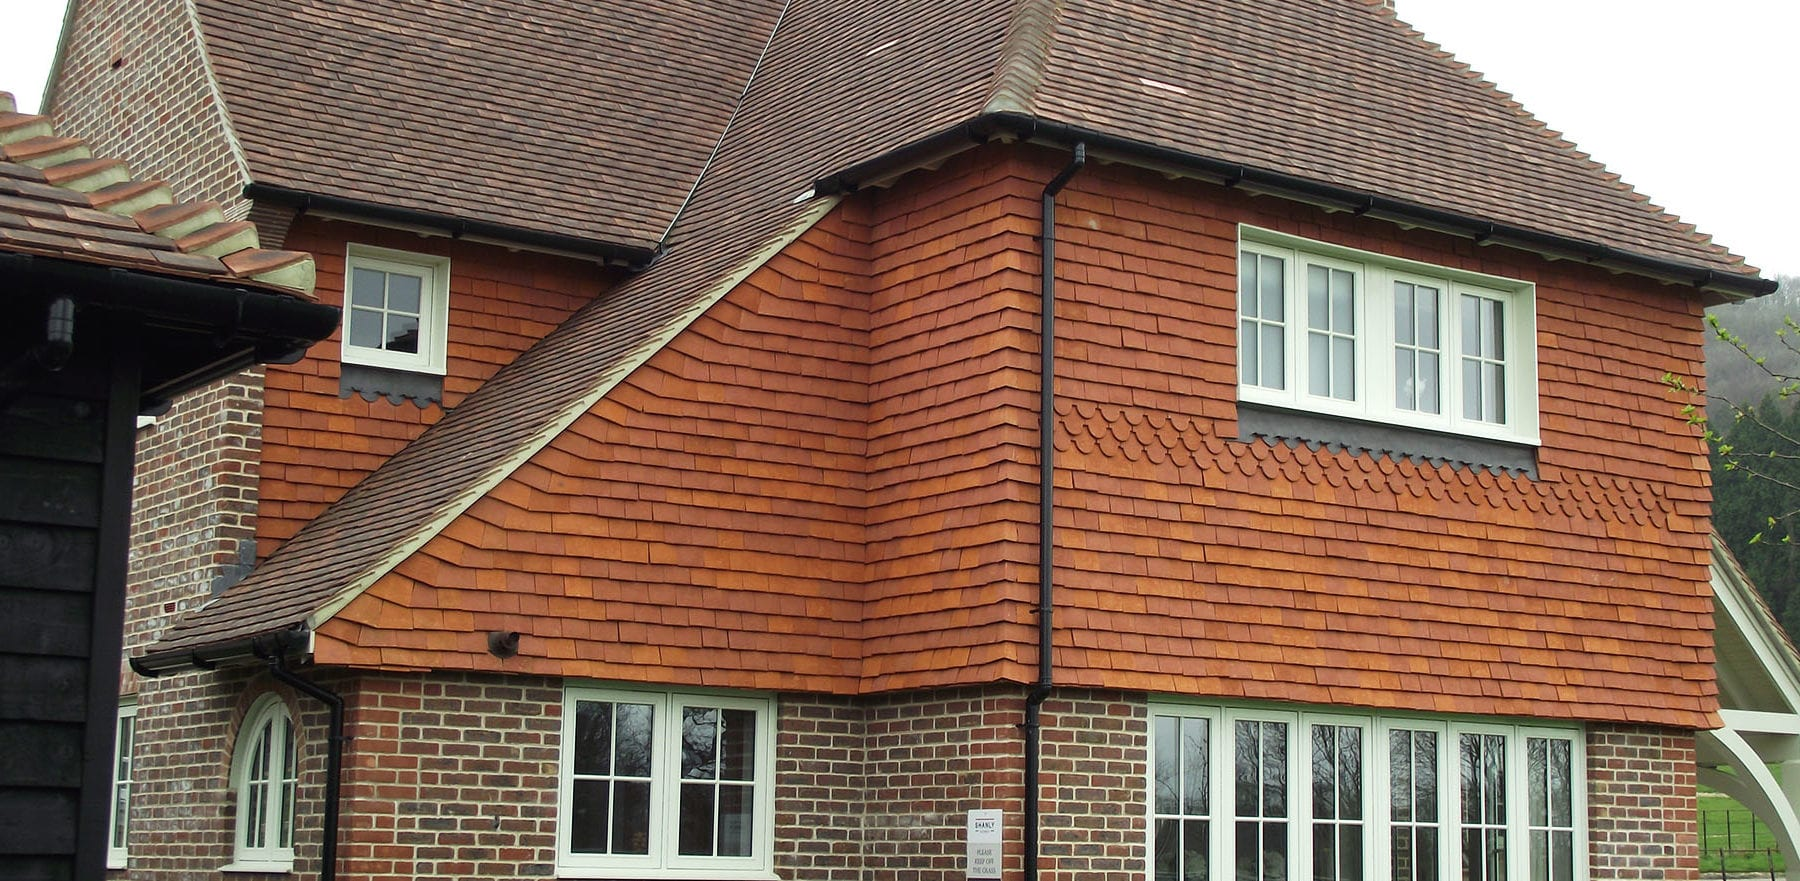 Lifestiles - Handcrafted Orange Clay Roof Tiles - Seaford College, England 2